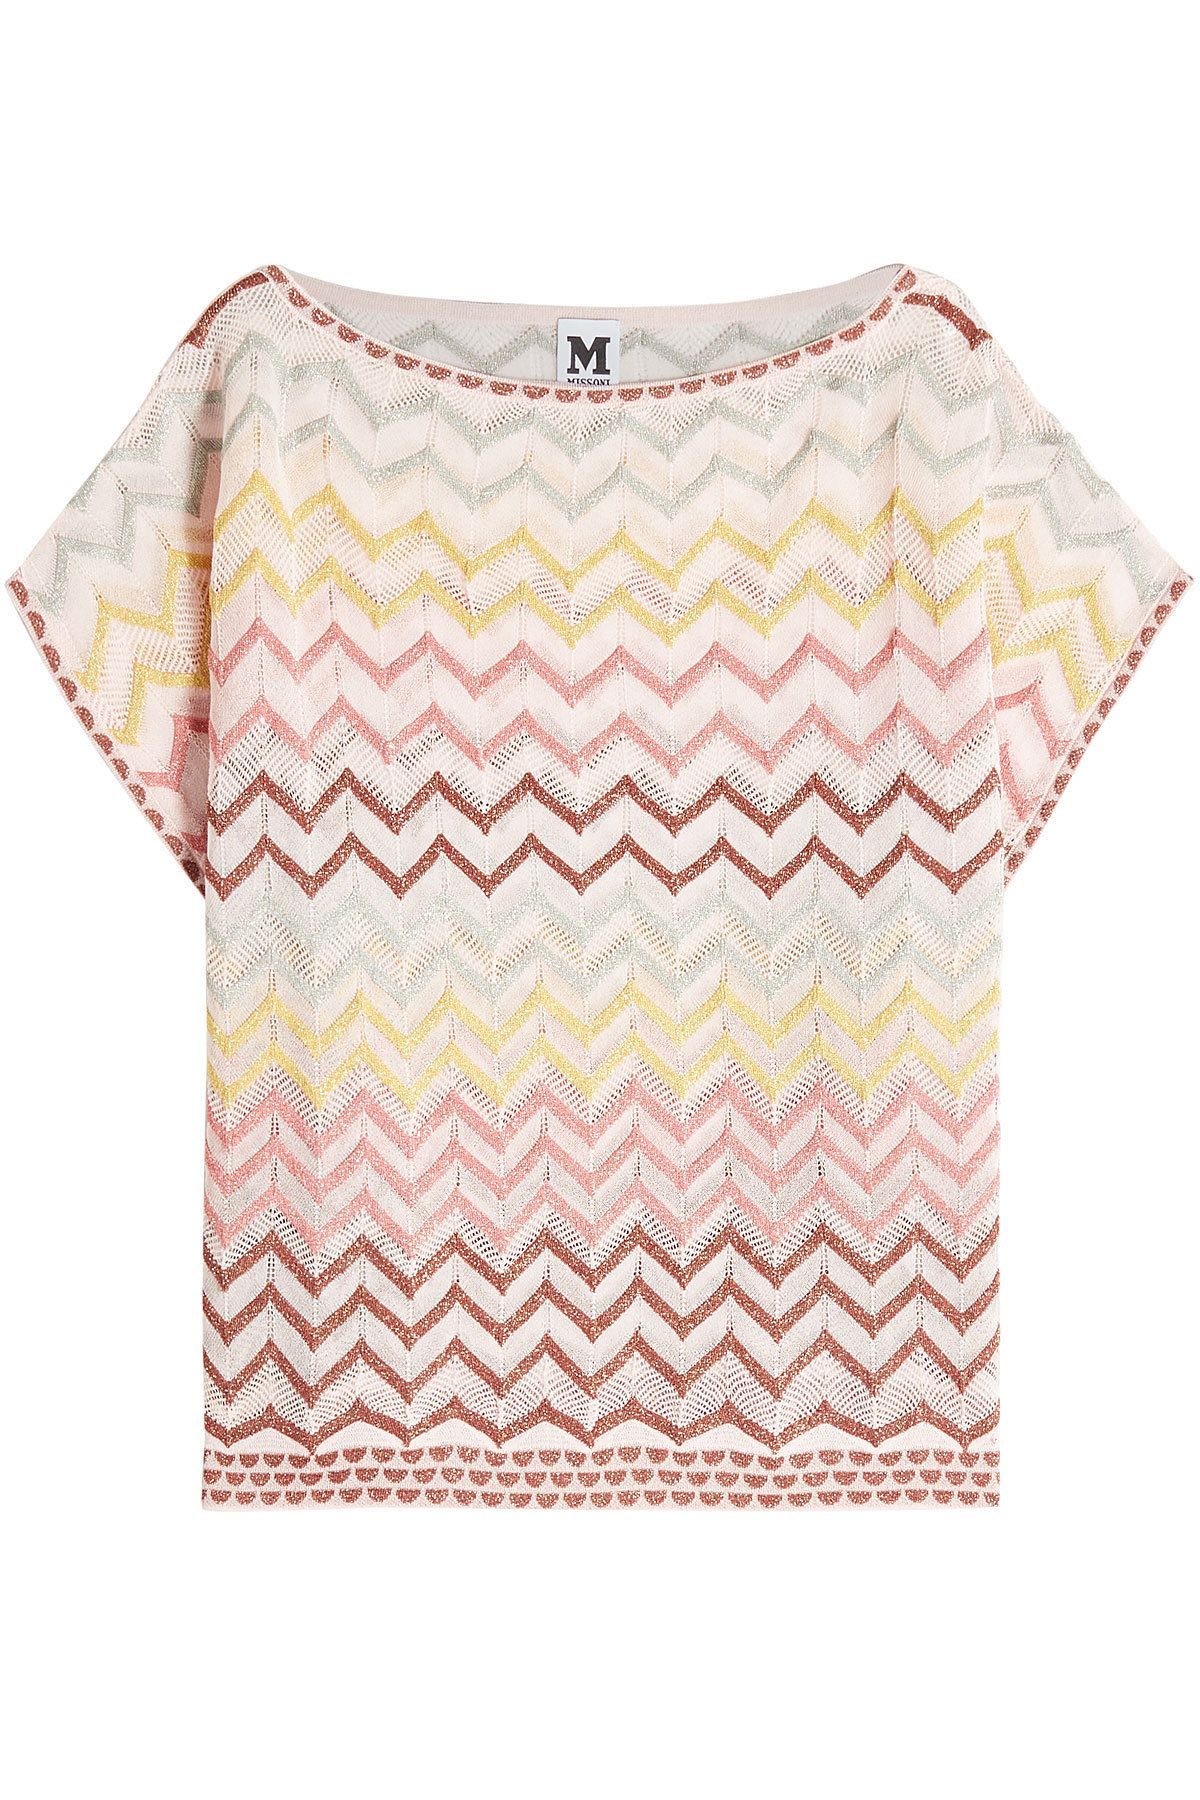 030a455576d4 M MISSONI KNIT TOP WITH COTTON AND METALLIC THREAD.  mmissoni  cloth